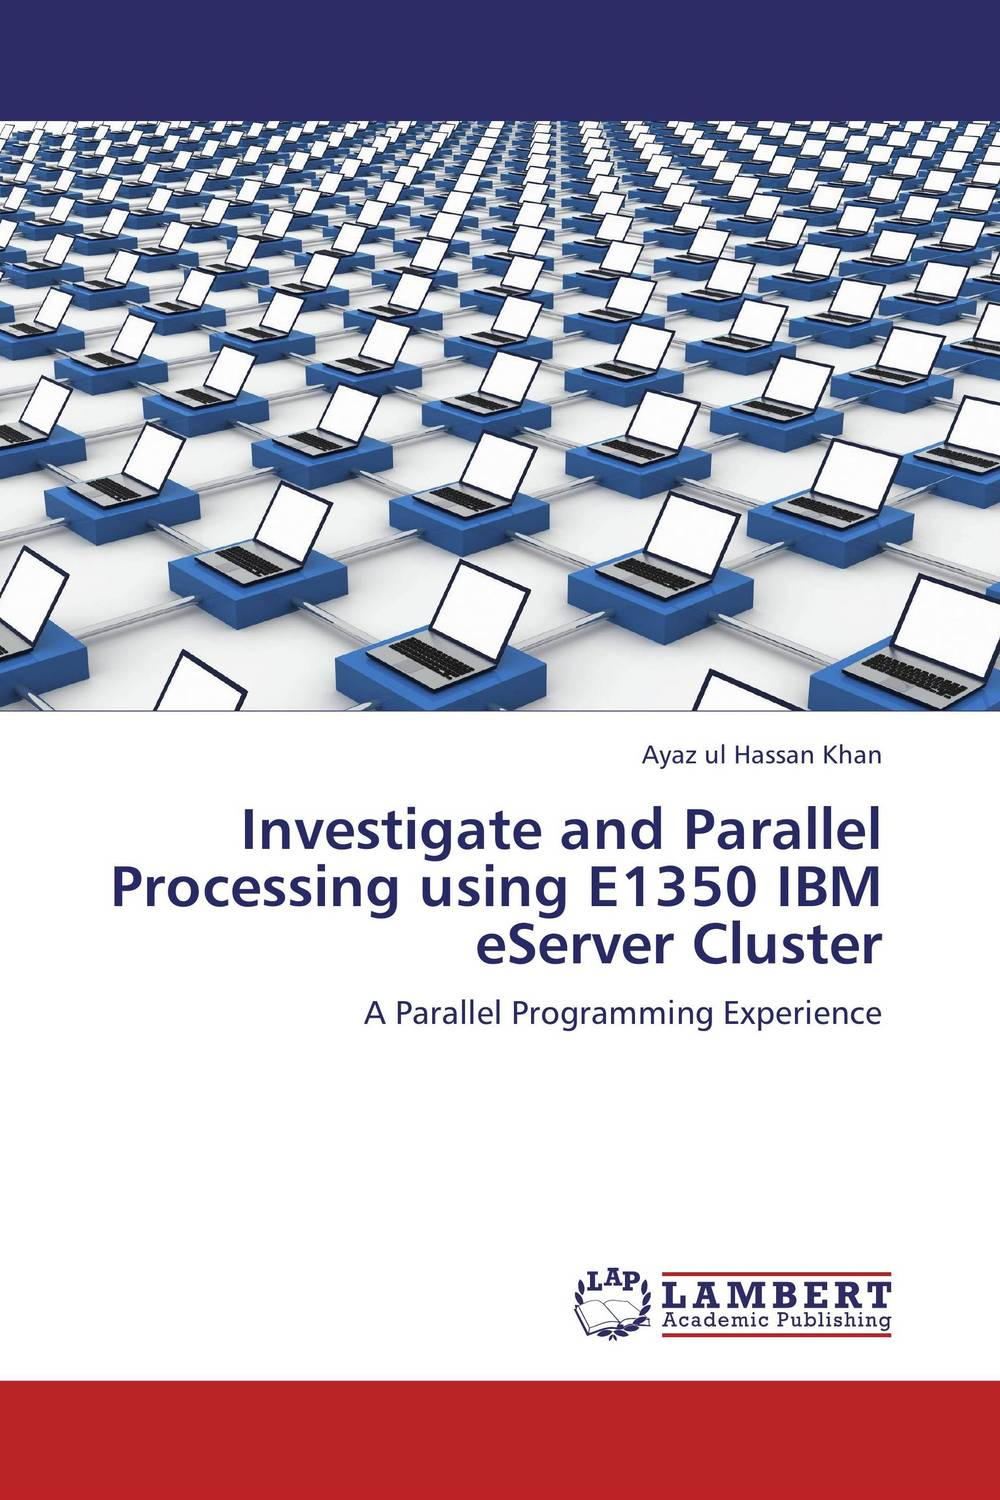 Investigate and Parallel Processing using E1350 IBM eServer Cluster gregory v wilson parallel programming using c